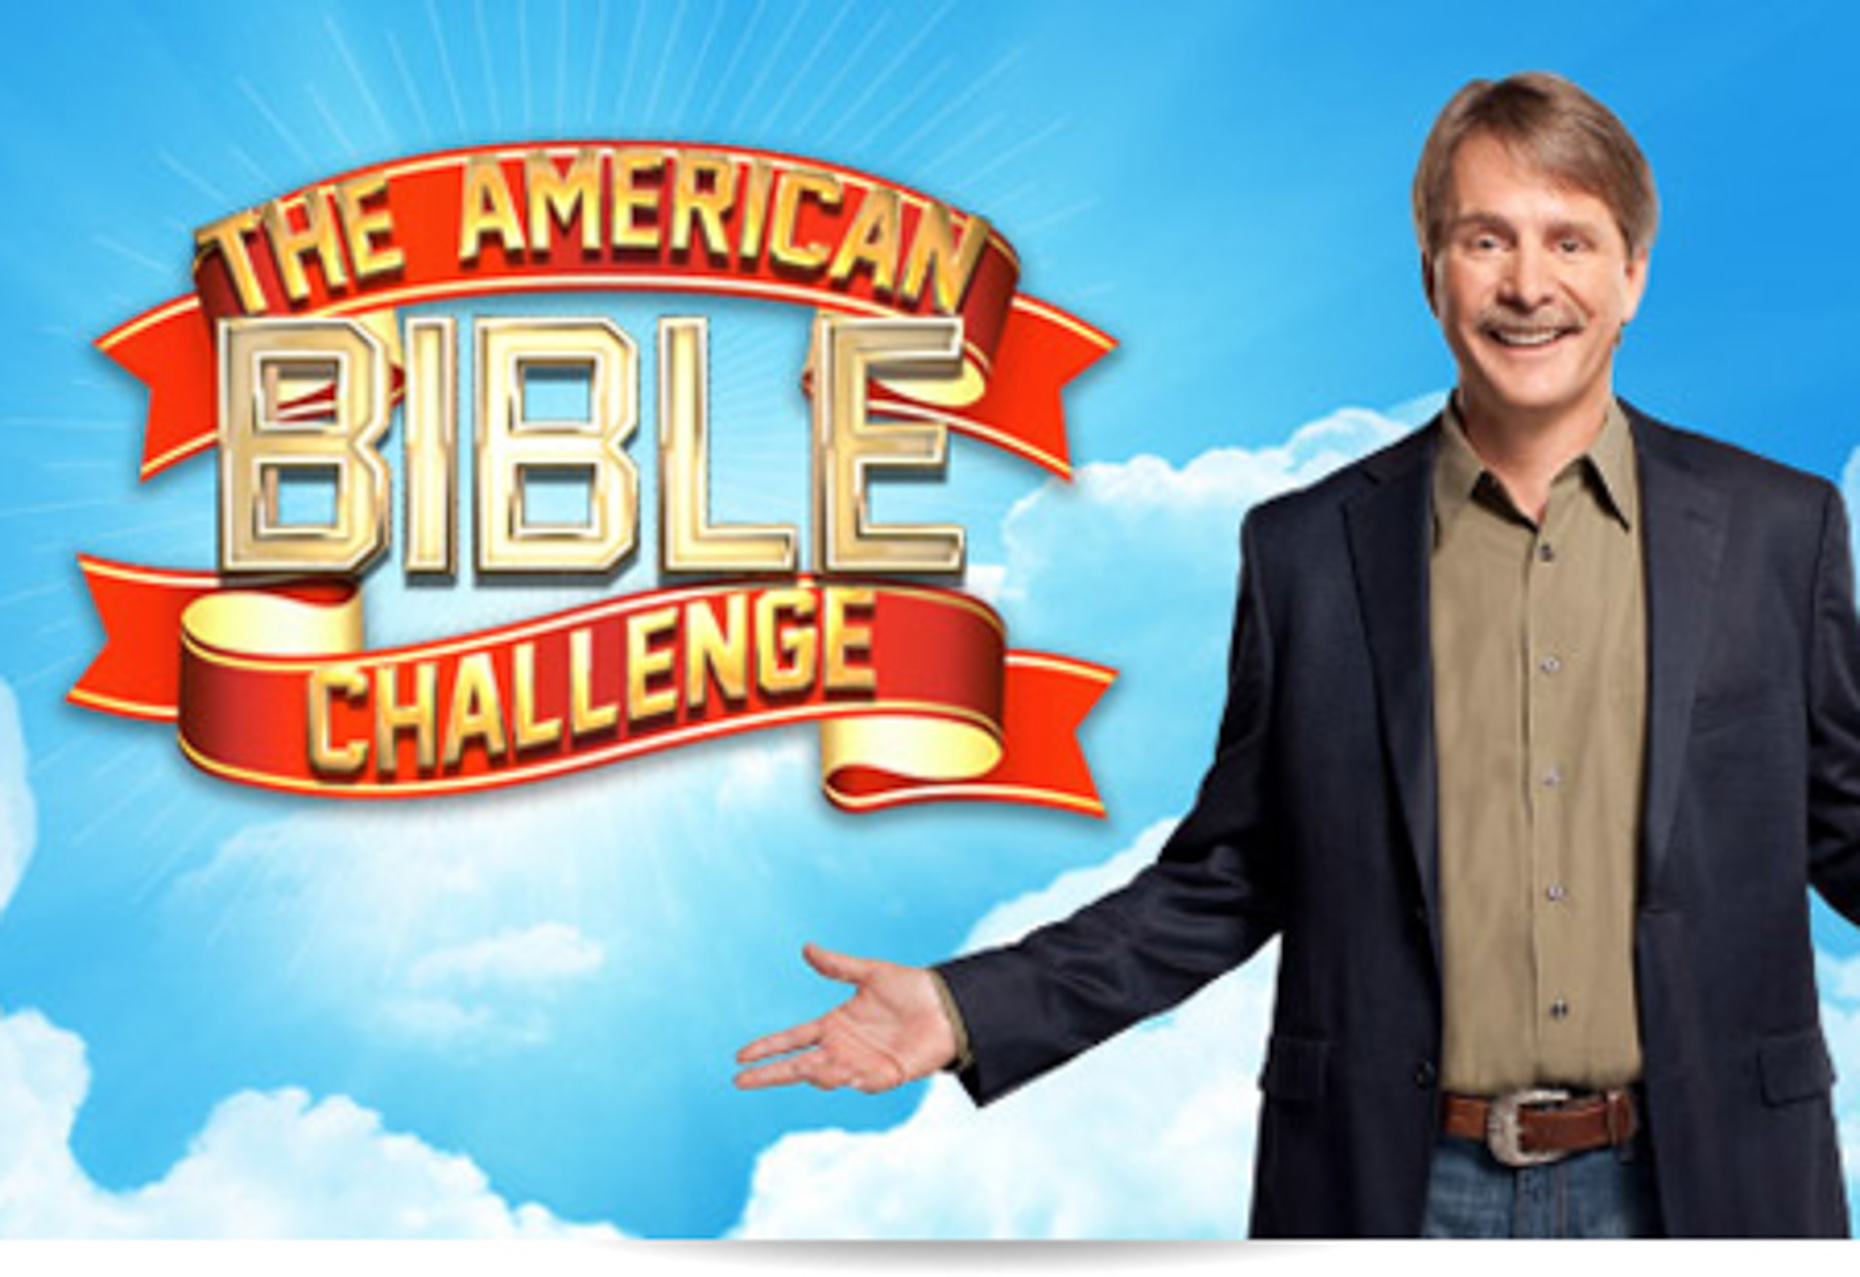 american-bible-challenge_again